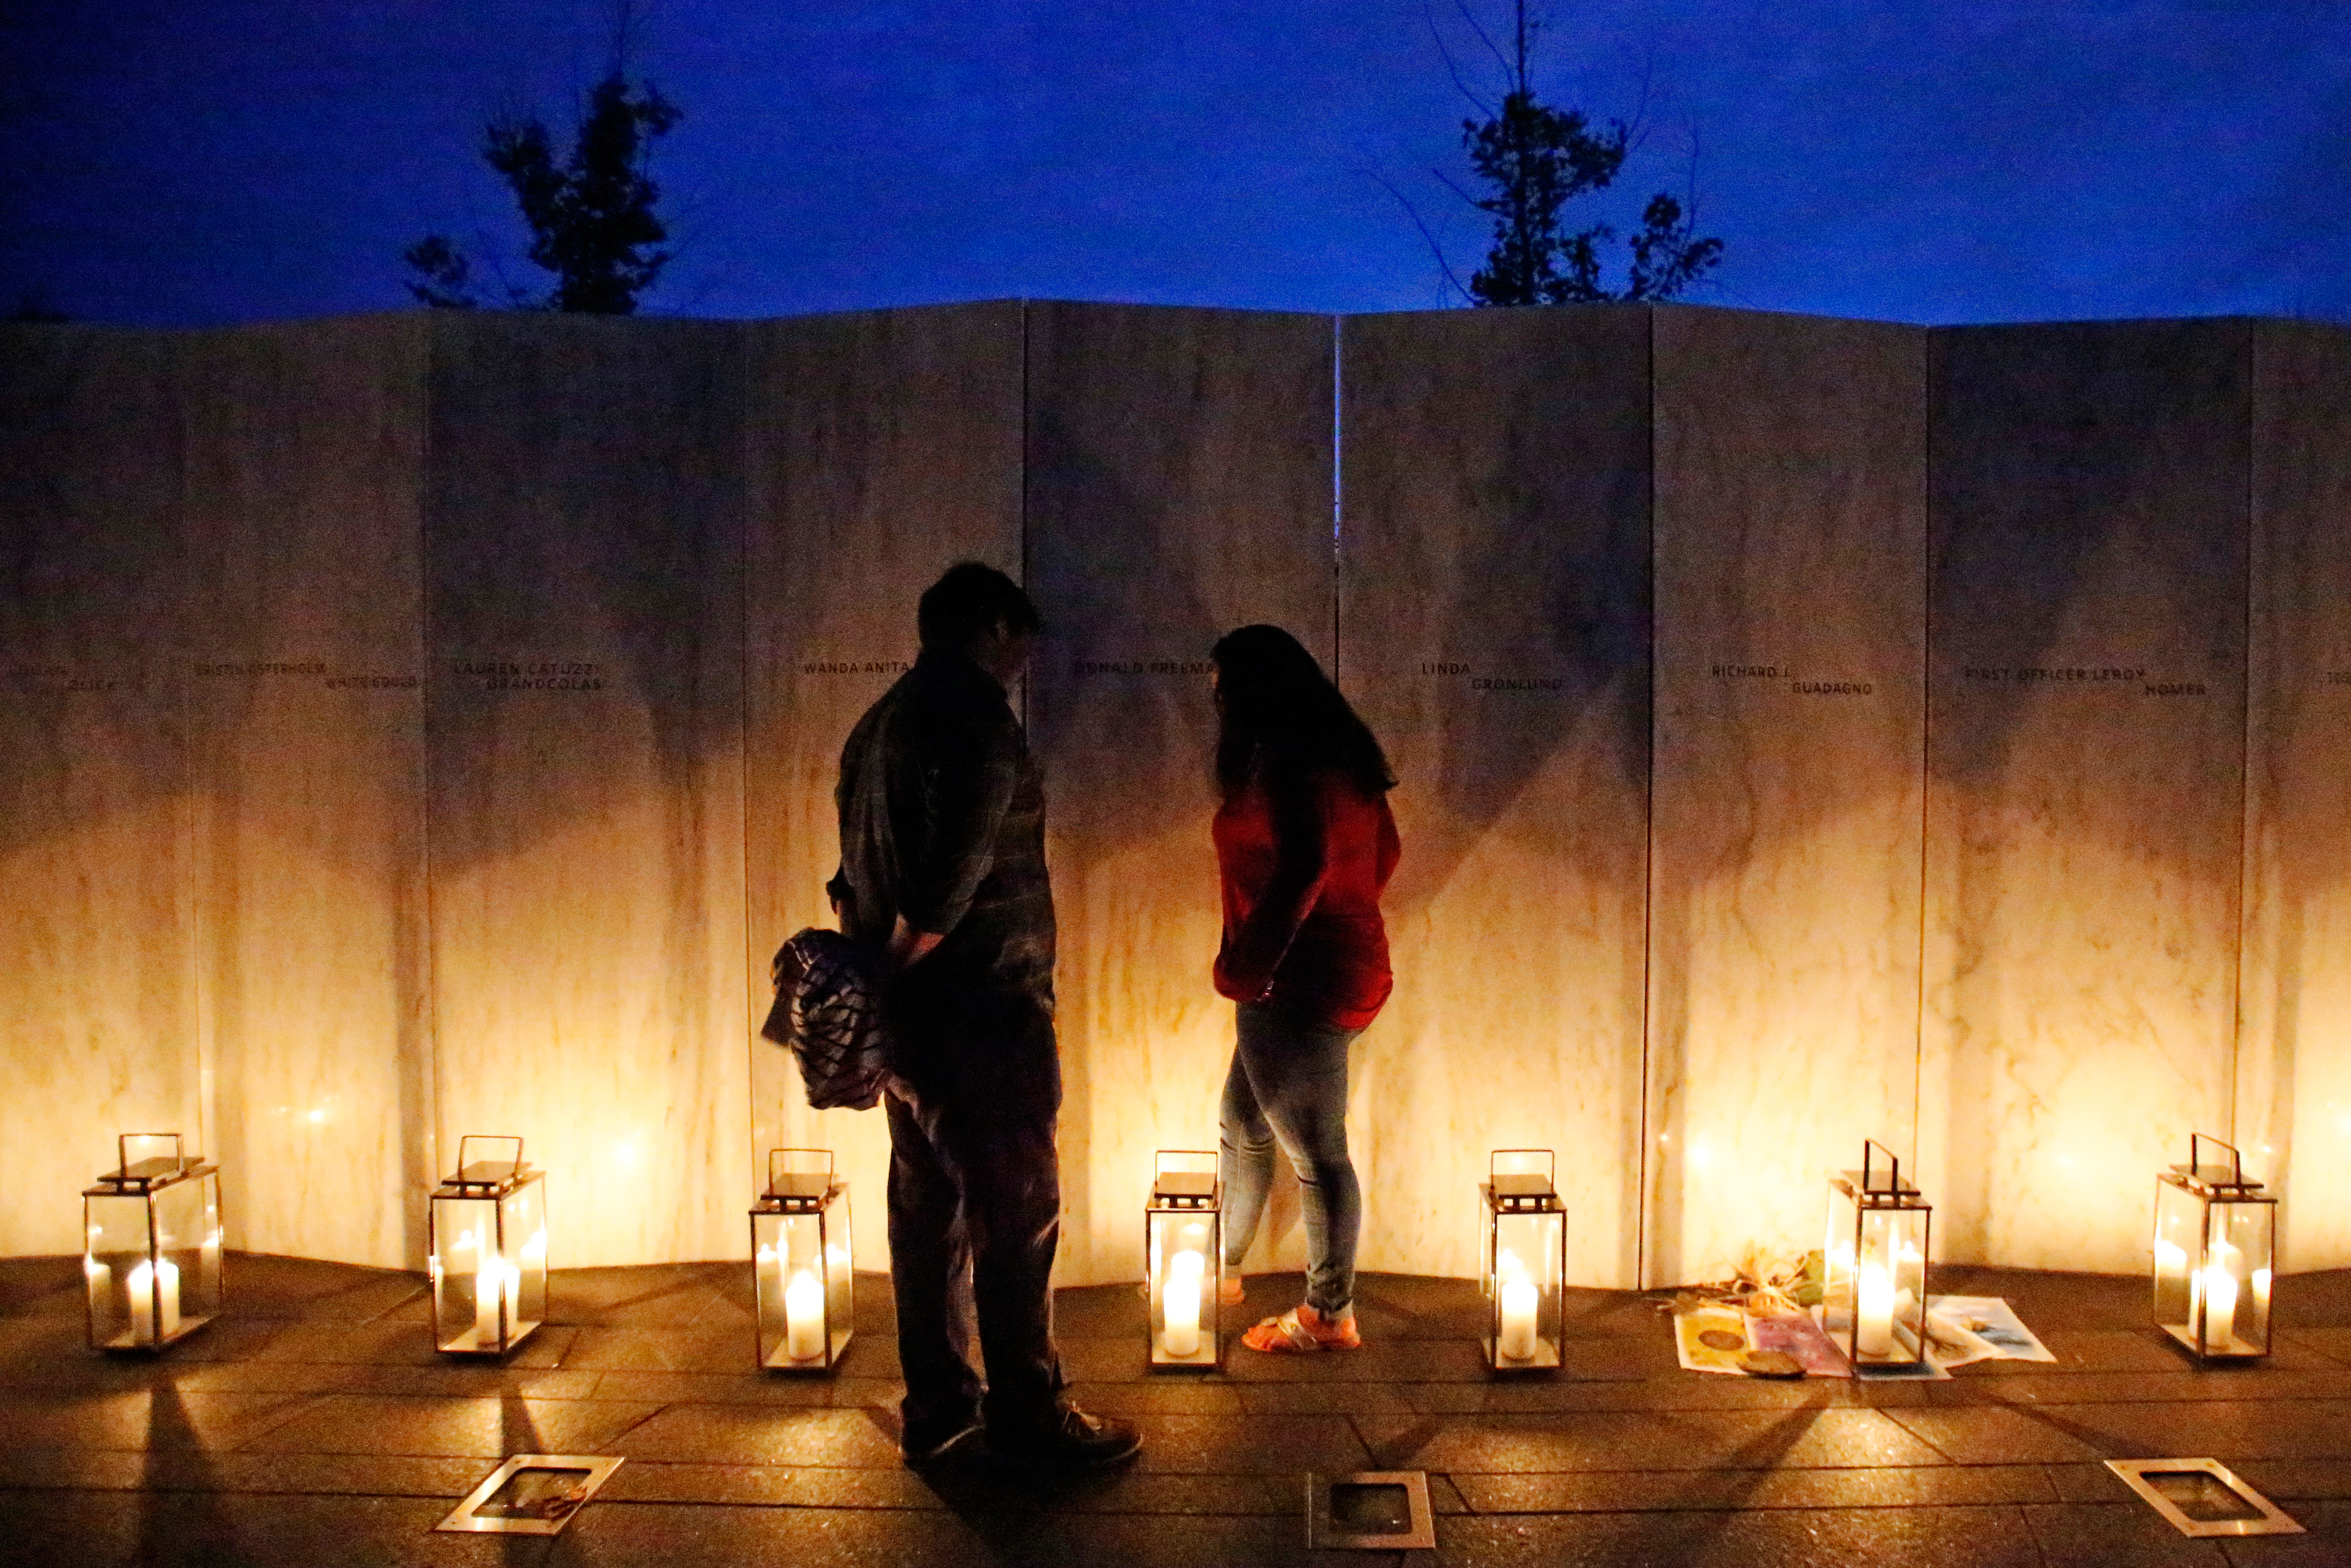 Sept. 11: Remembering the tragedy 14 years ago